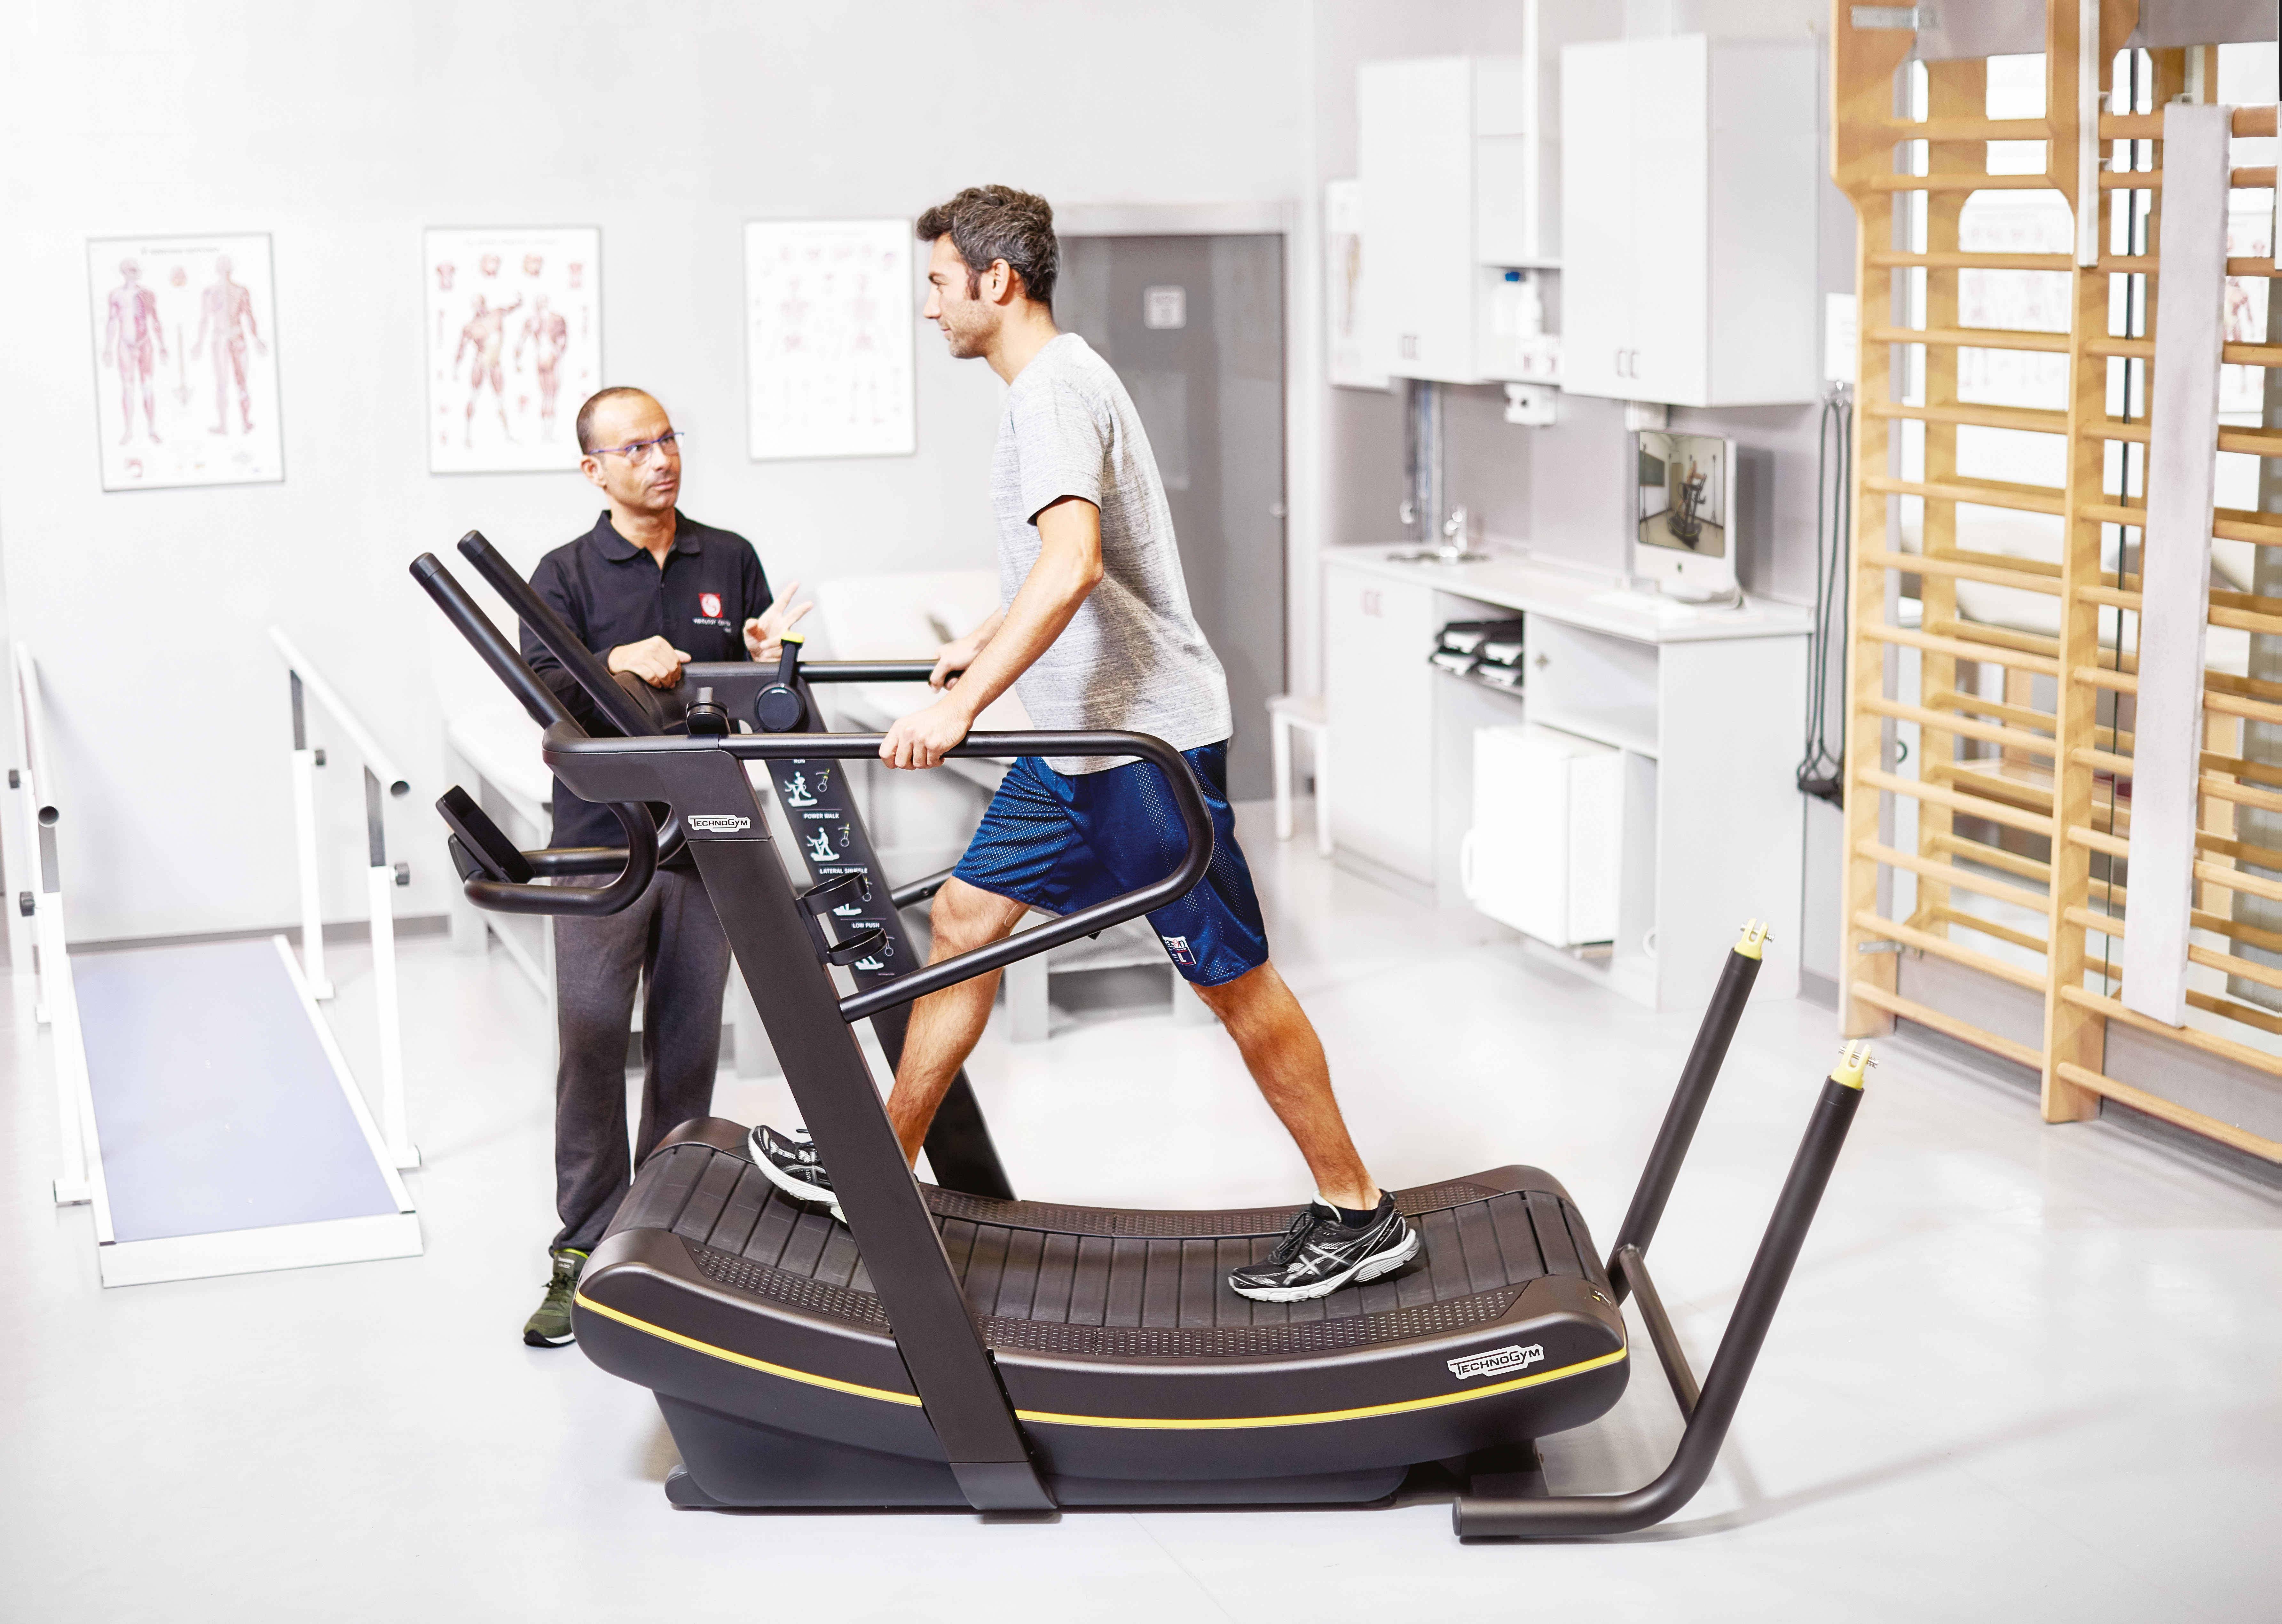 SKILLMILL: the ideal solution  for both athletic performance training and rehabilitation